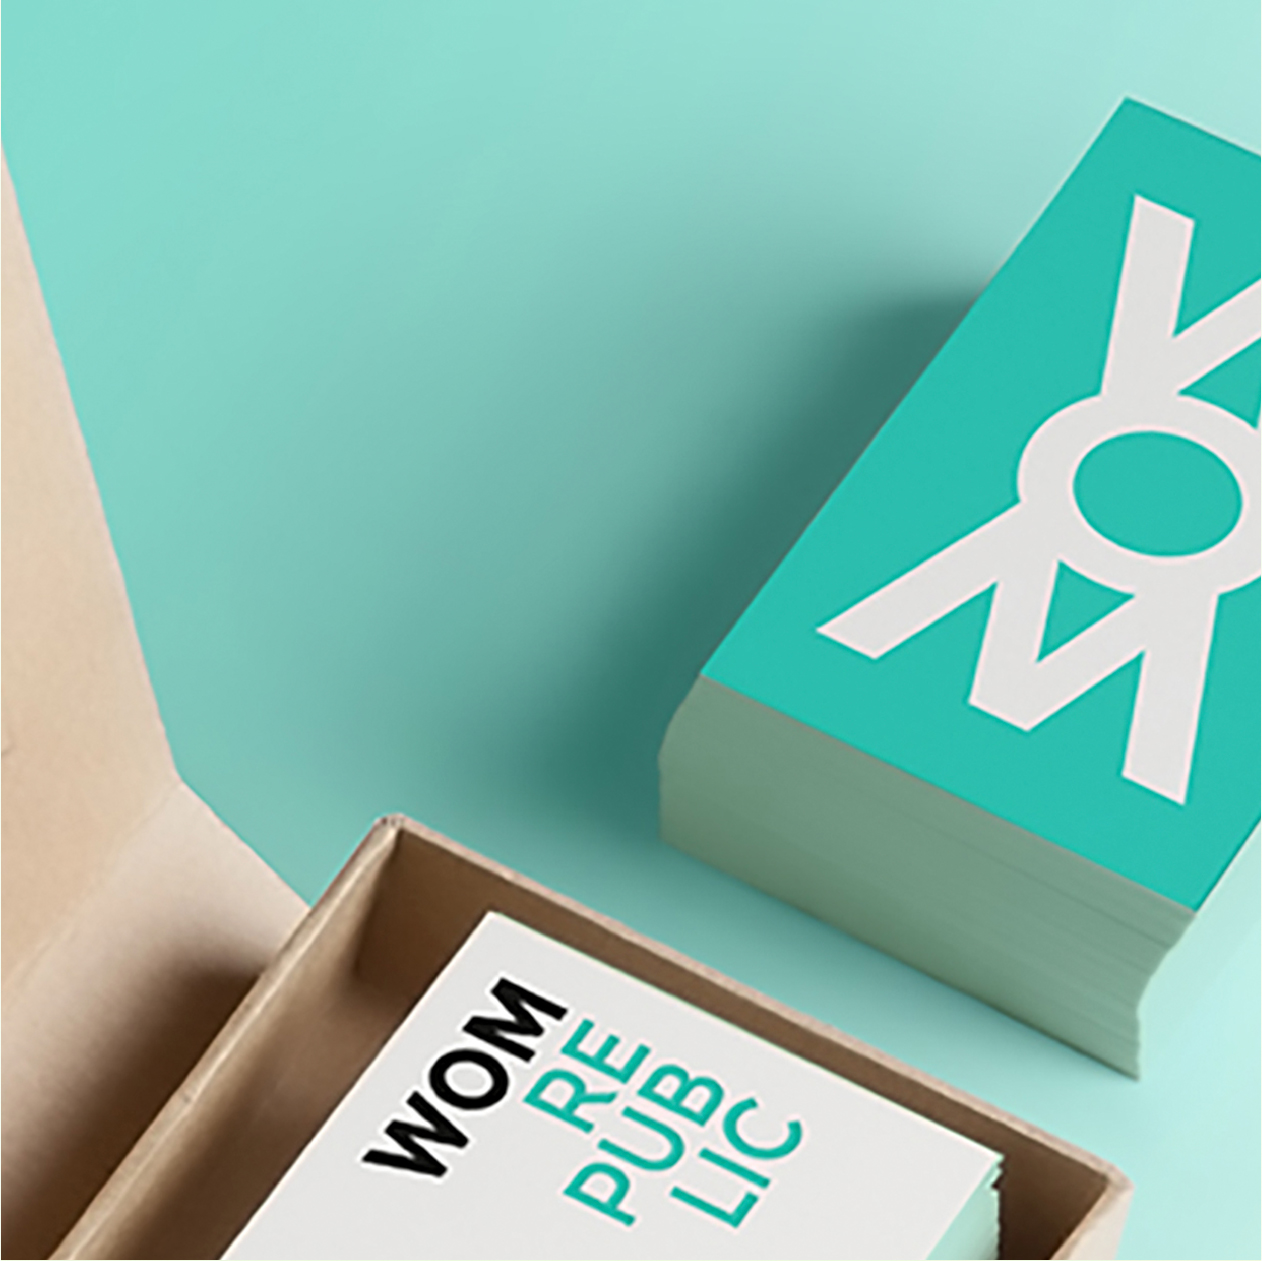 New Identity for WOM - The time we created an identity for pioneering a Market Research brand…